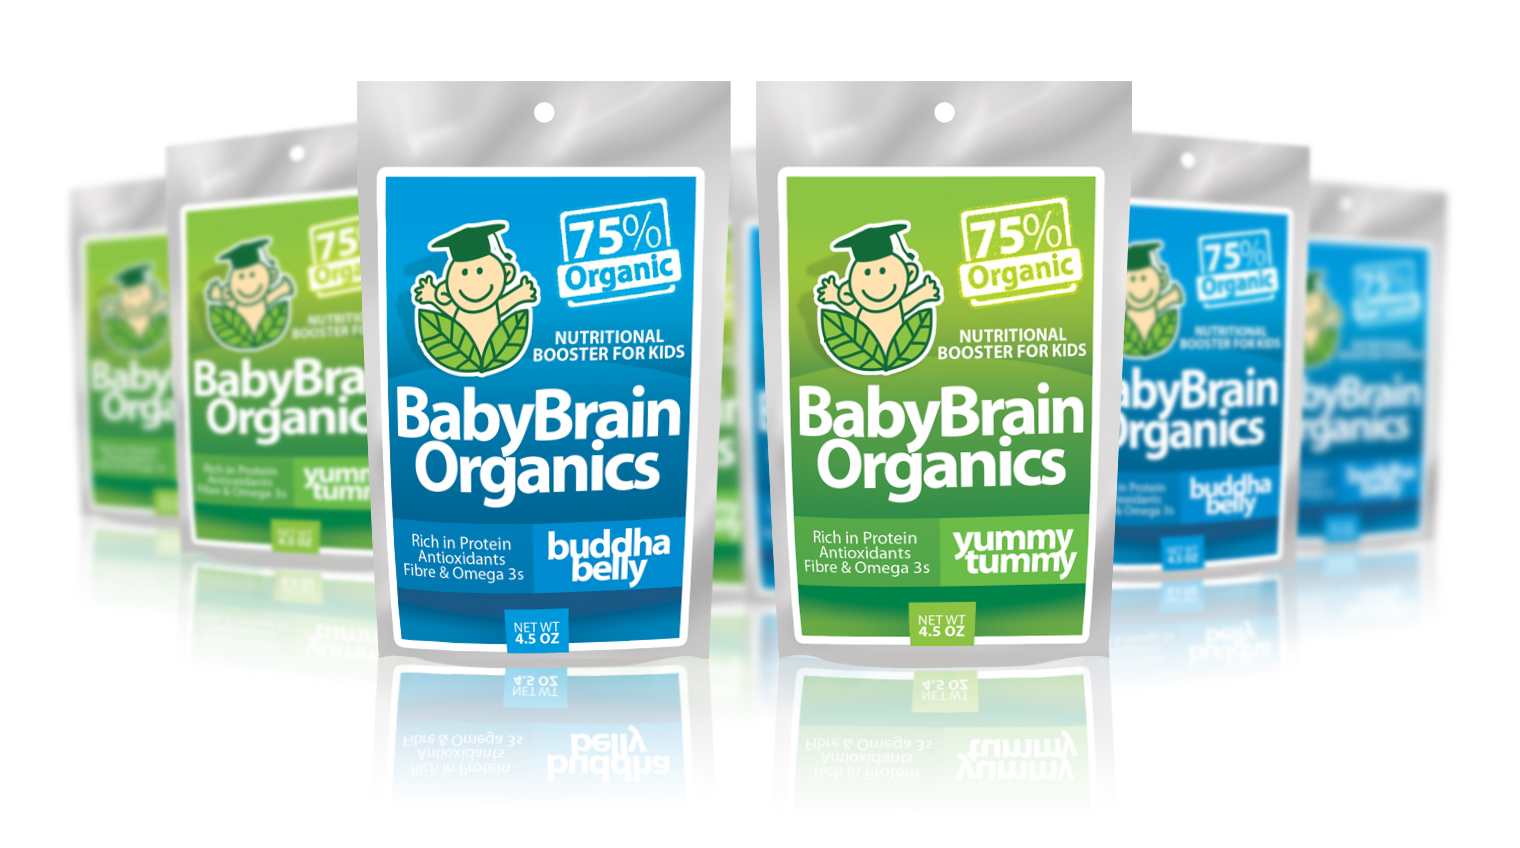 Packaging Design by Sherwin Soy - Entry No. 67 in the Packaging Design Contest Baby Brain Organics Packaging Design.